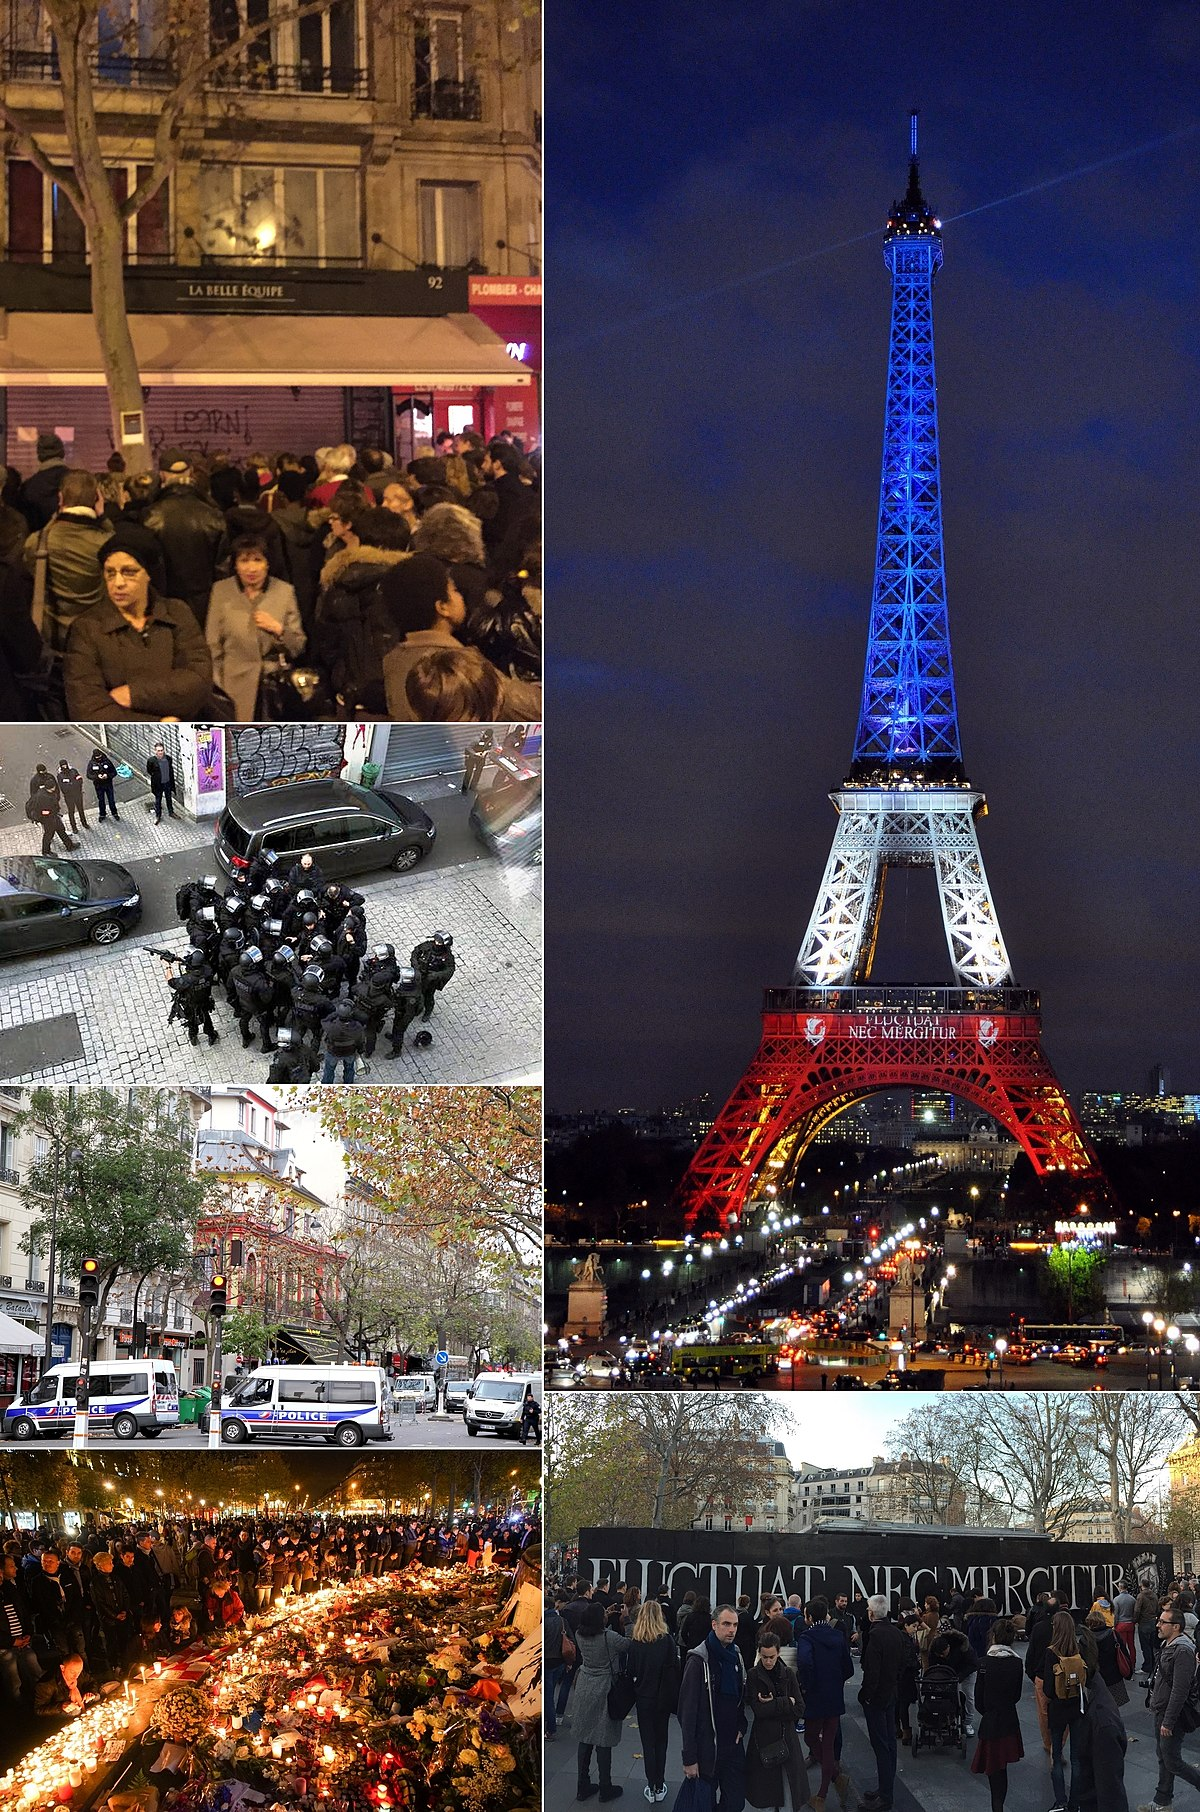 November 2015 Paris Attacks Wikipedia